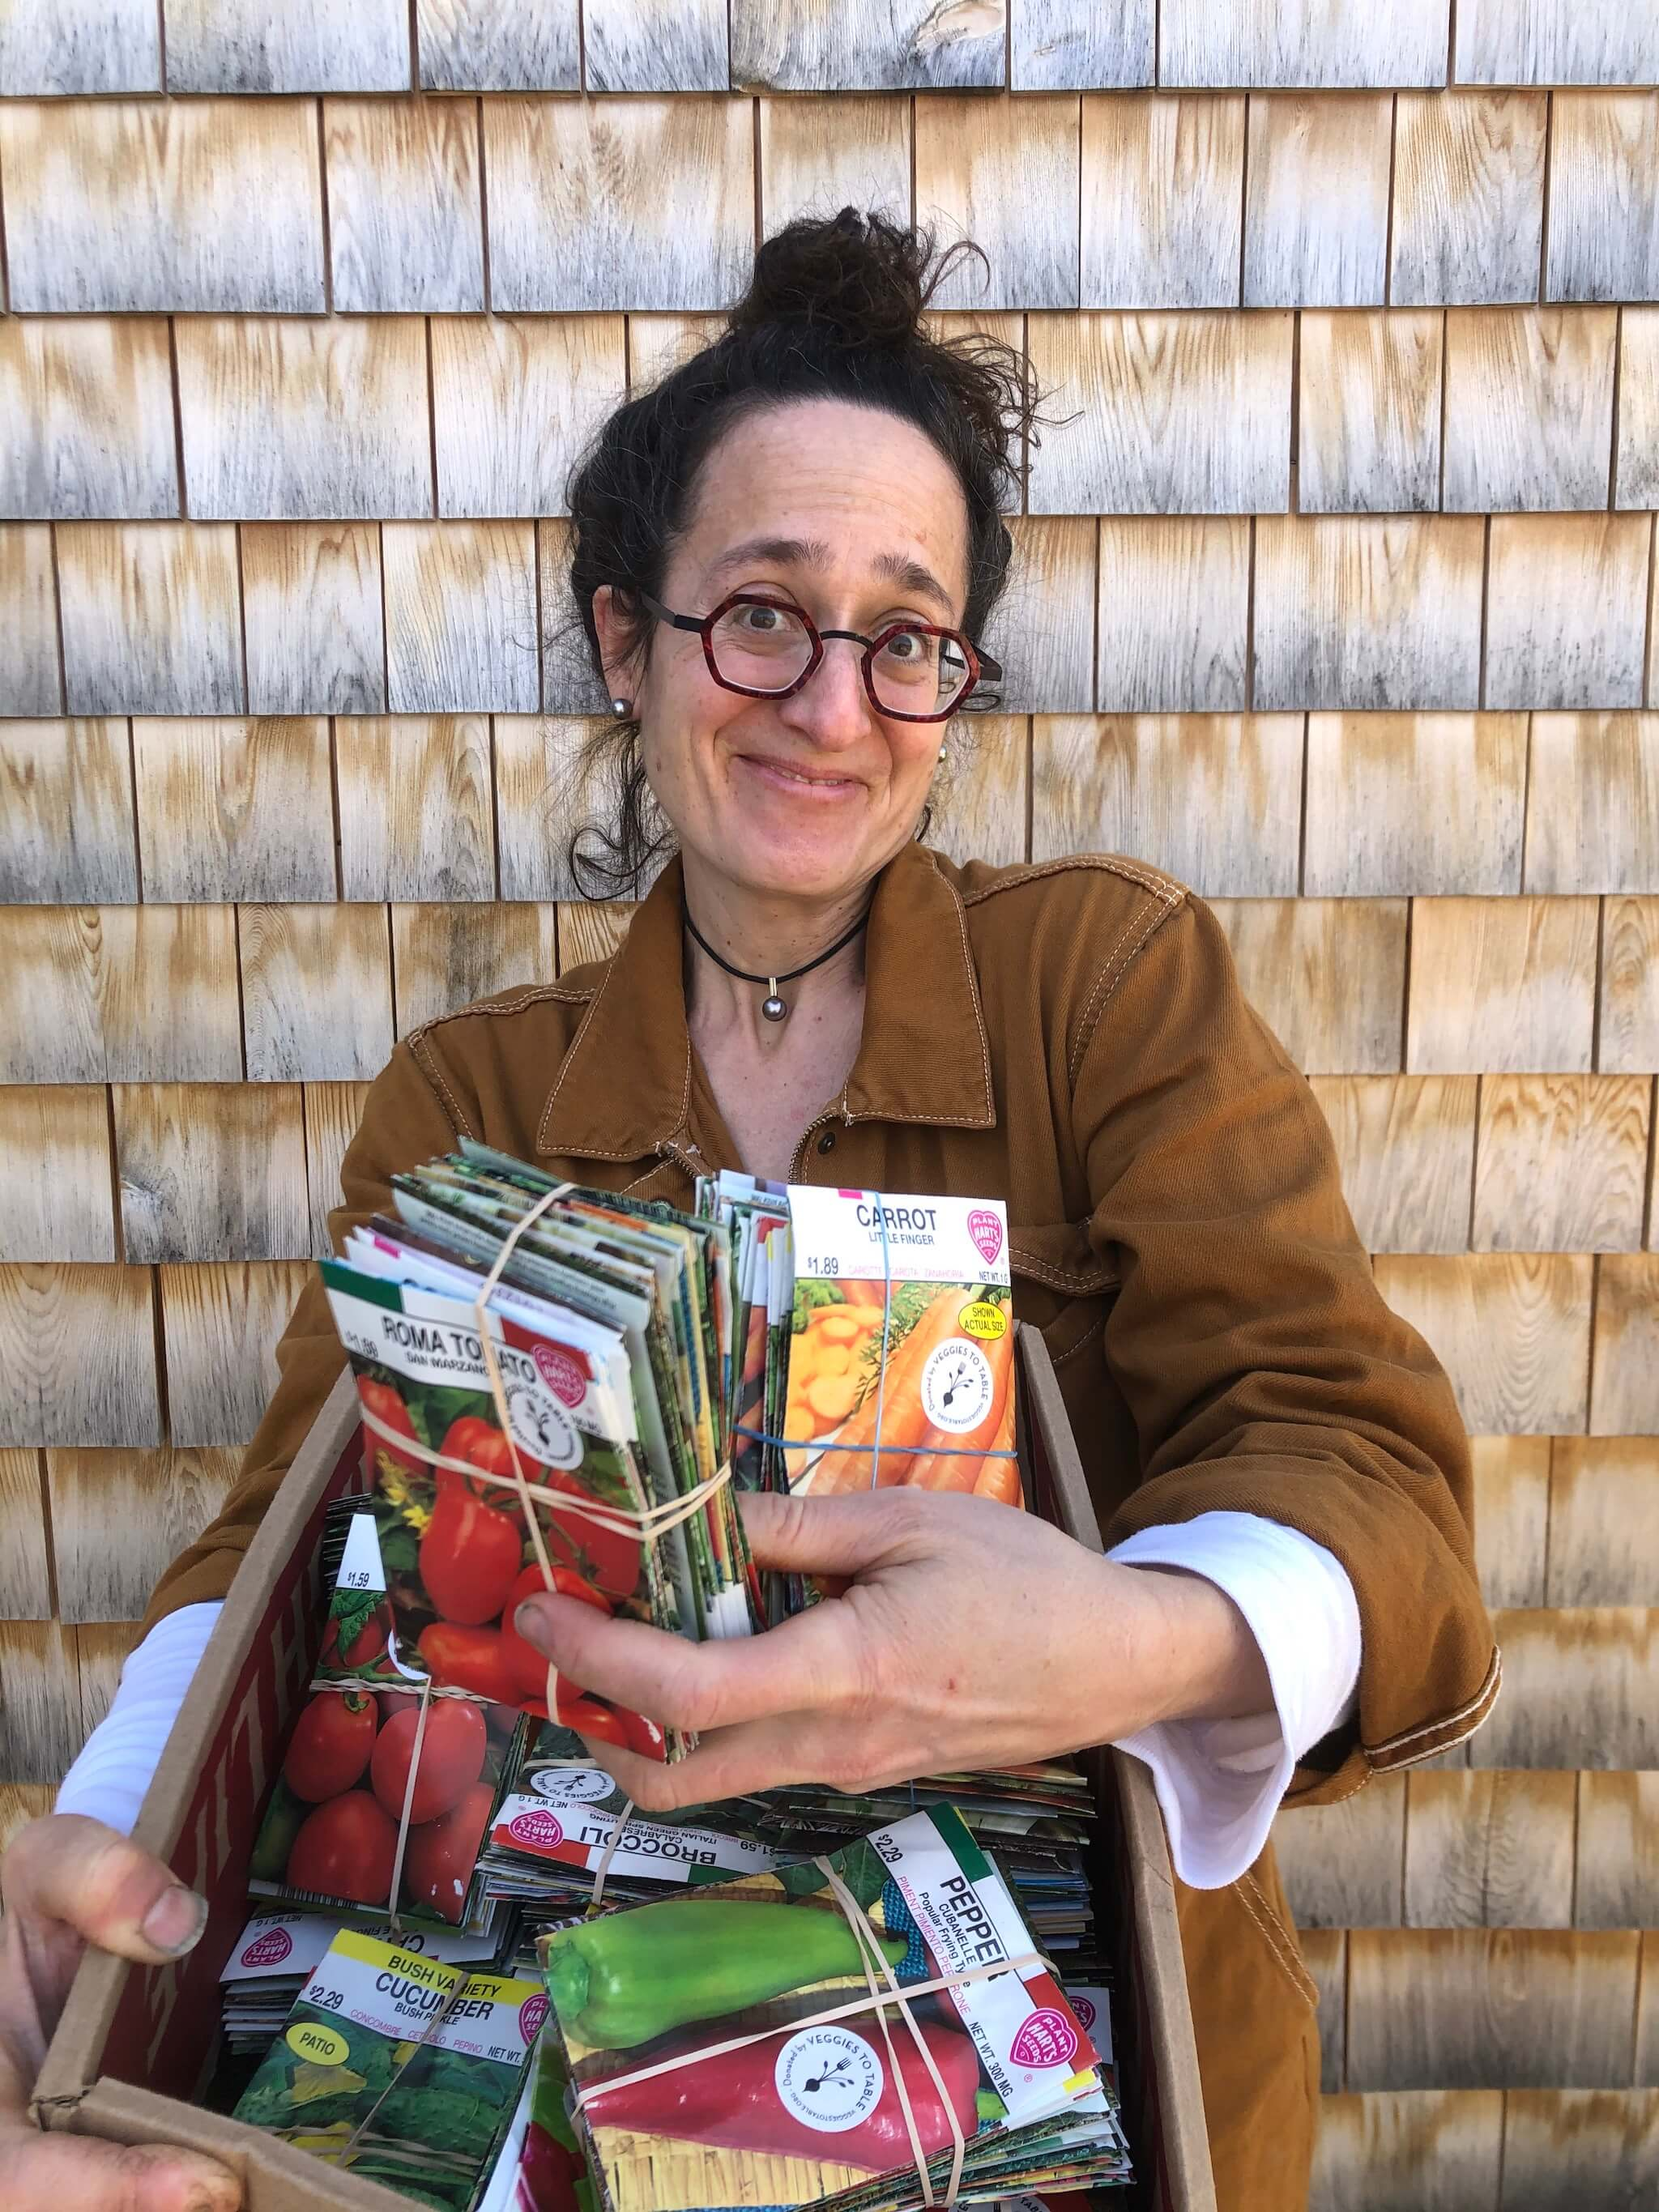 Veggies to Table donates 1100 packets of seeds to local food pantries